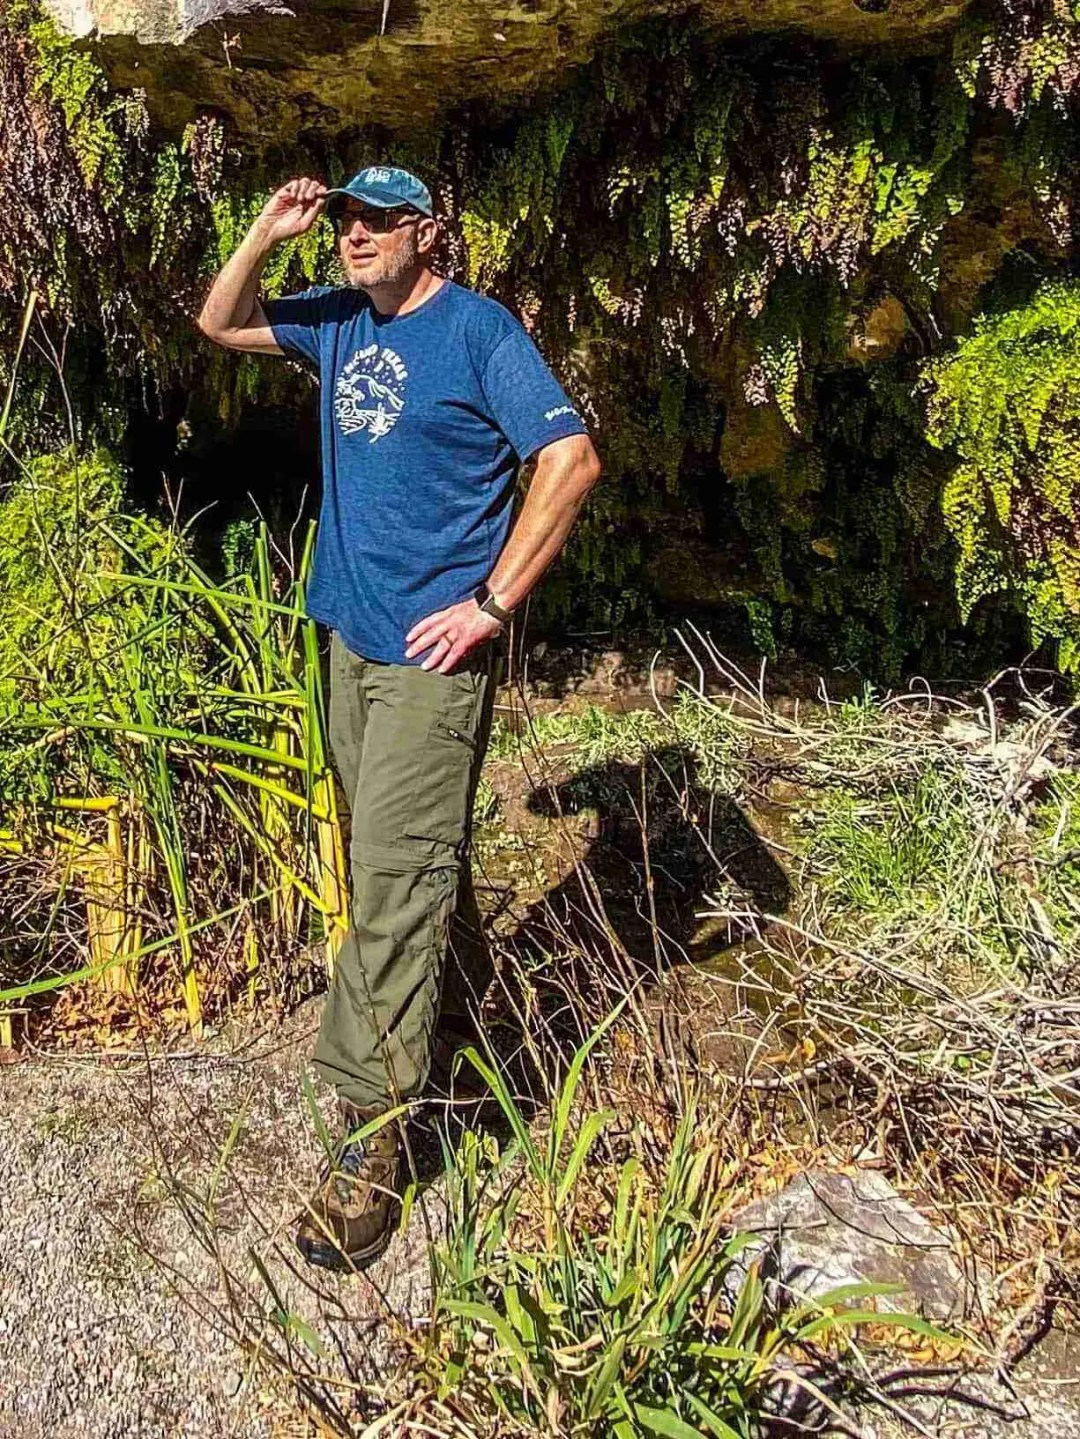 Adam Brower, virtual park ranger of big bend guide, at Ojito Adentro spring in Big Bend Ranch State Park